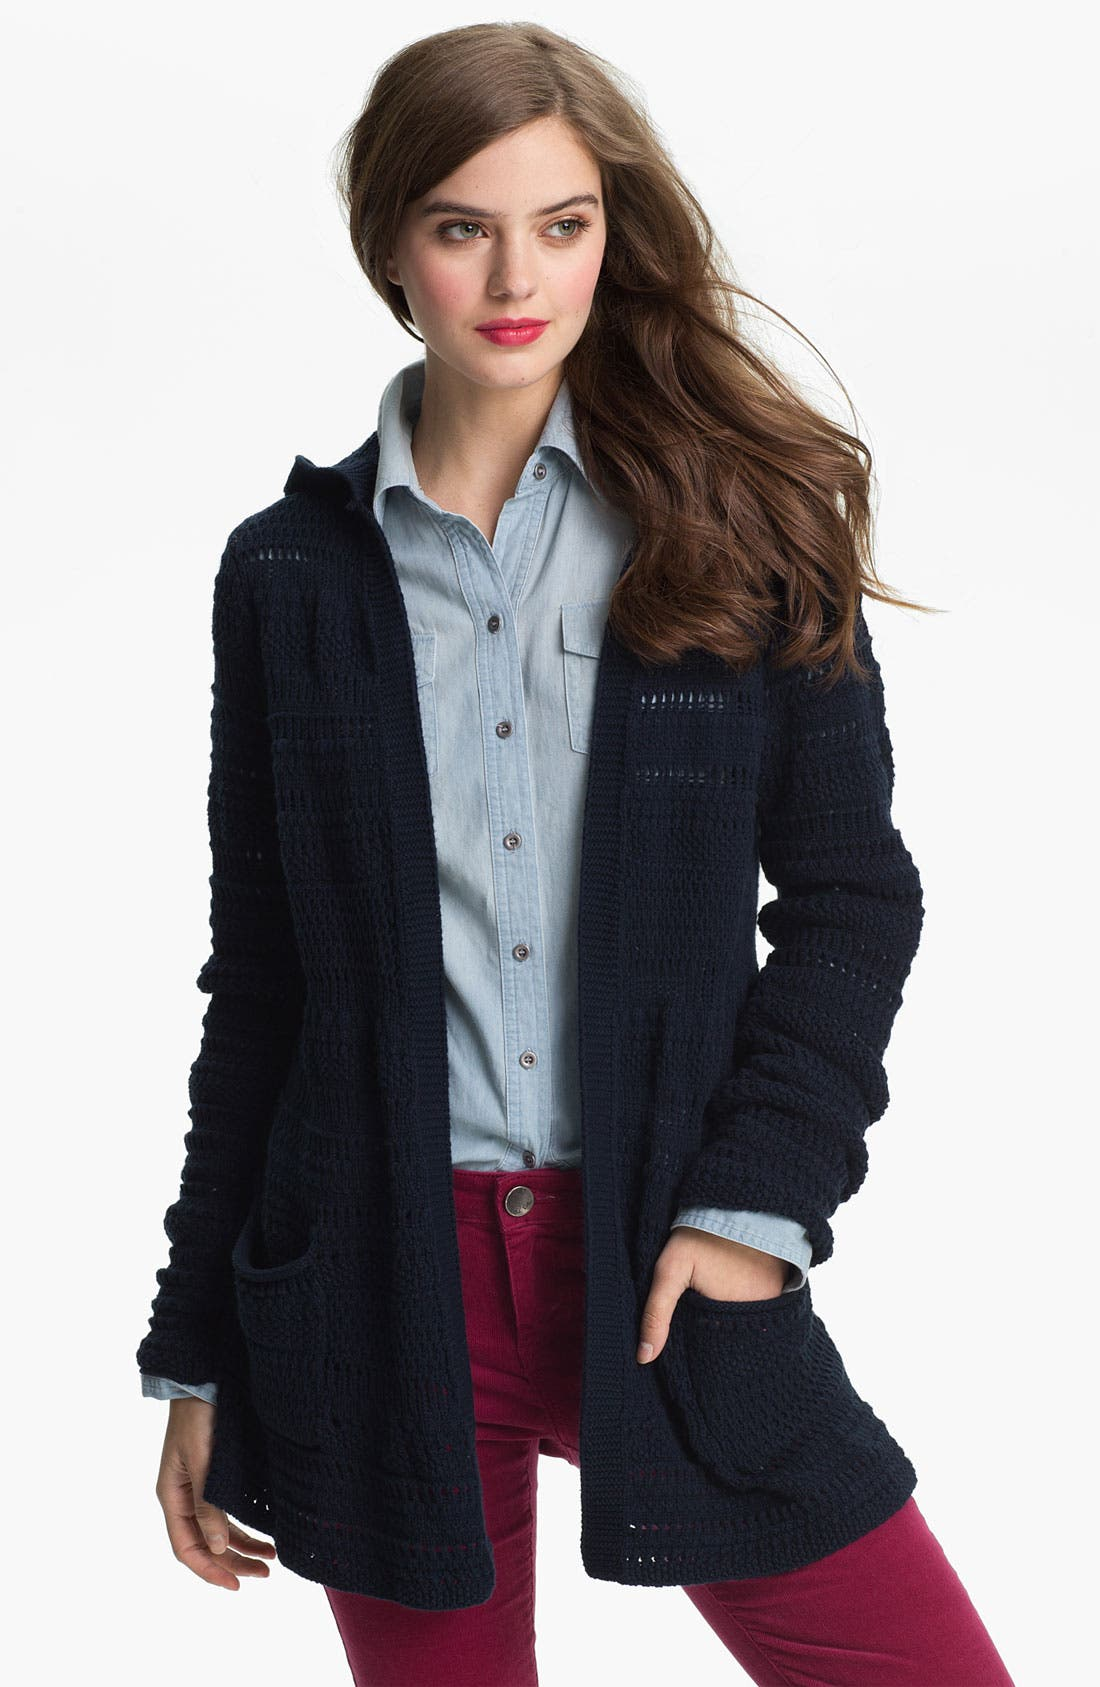 Alternate Image 1 Selected - Lucky Brand Hooded Sweater Jacket (Online Exclusive)